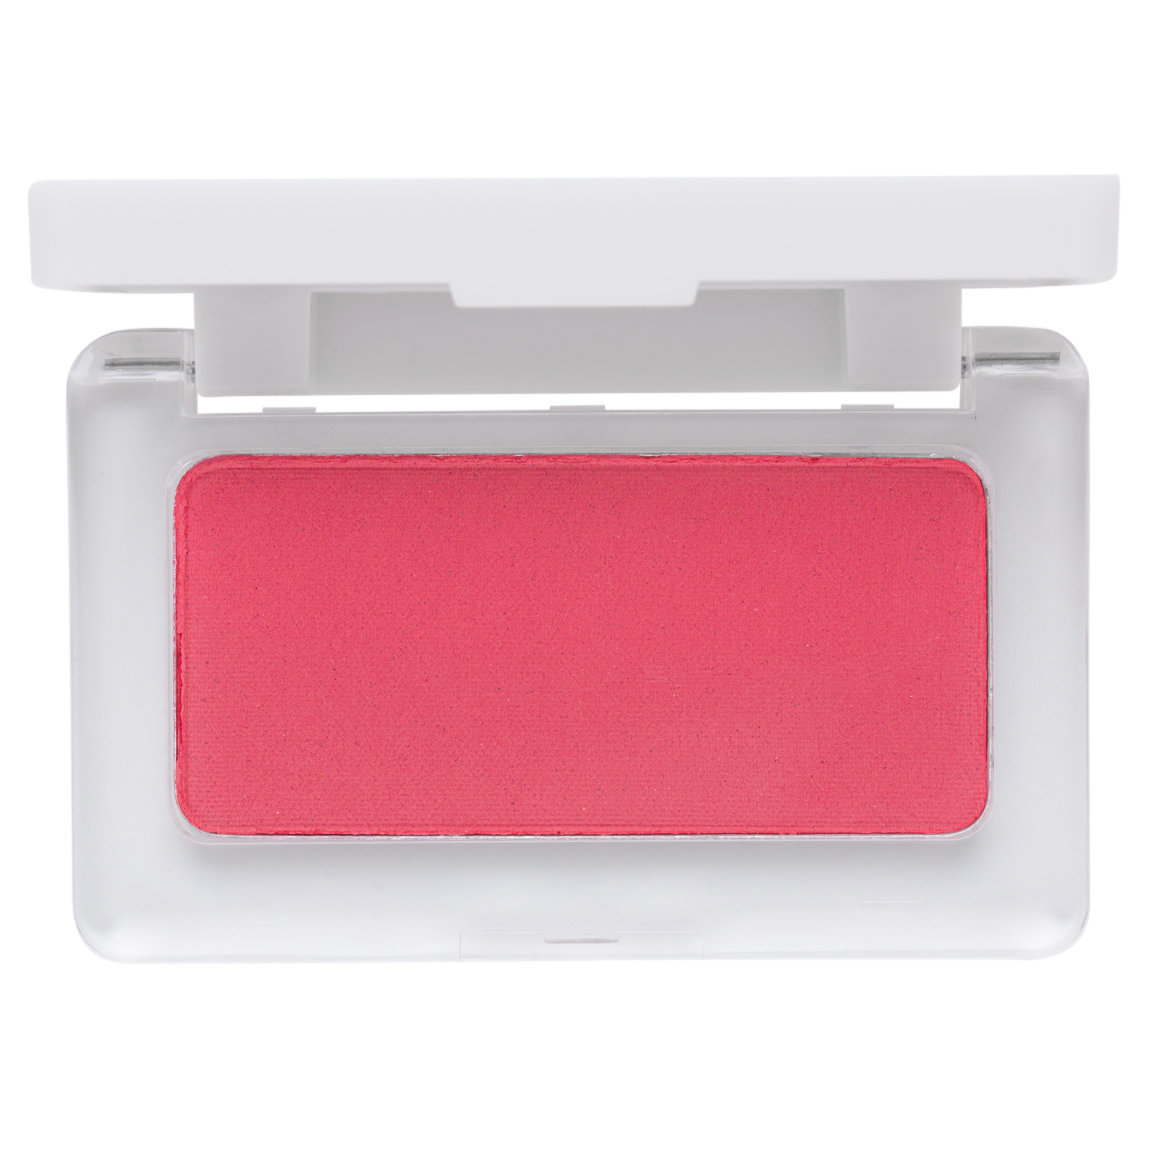 rms beauty Pressed Blush Crushed Rose product smear.